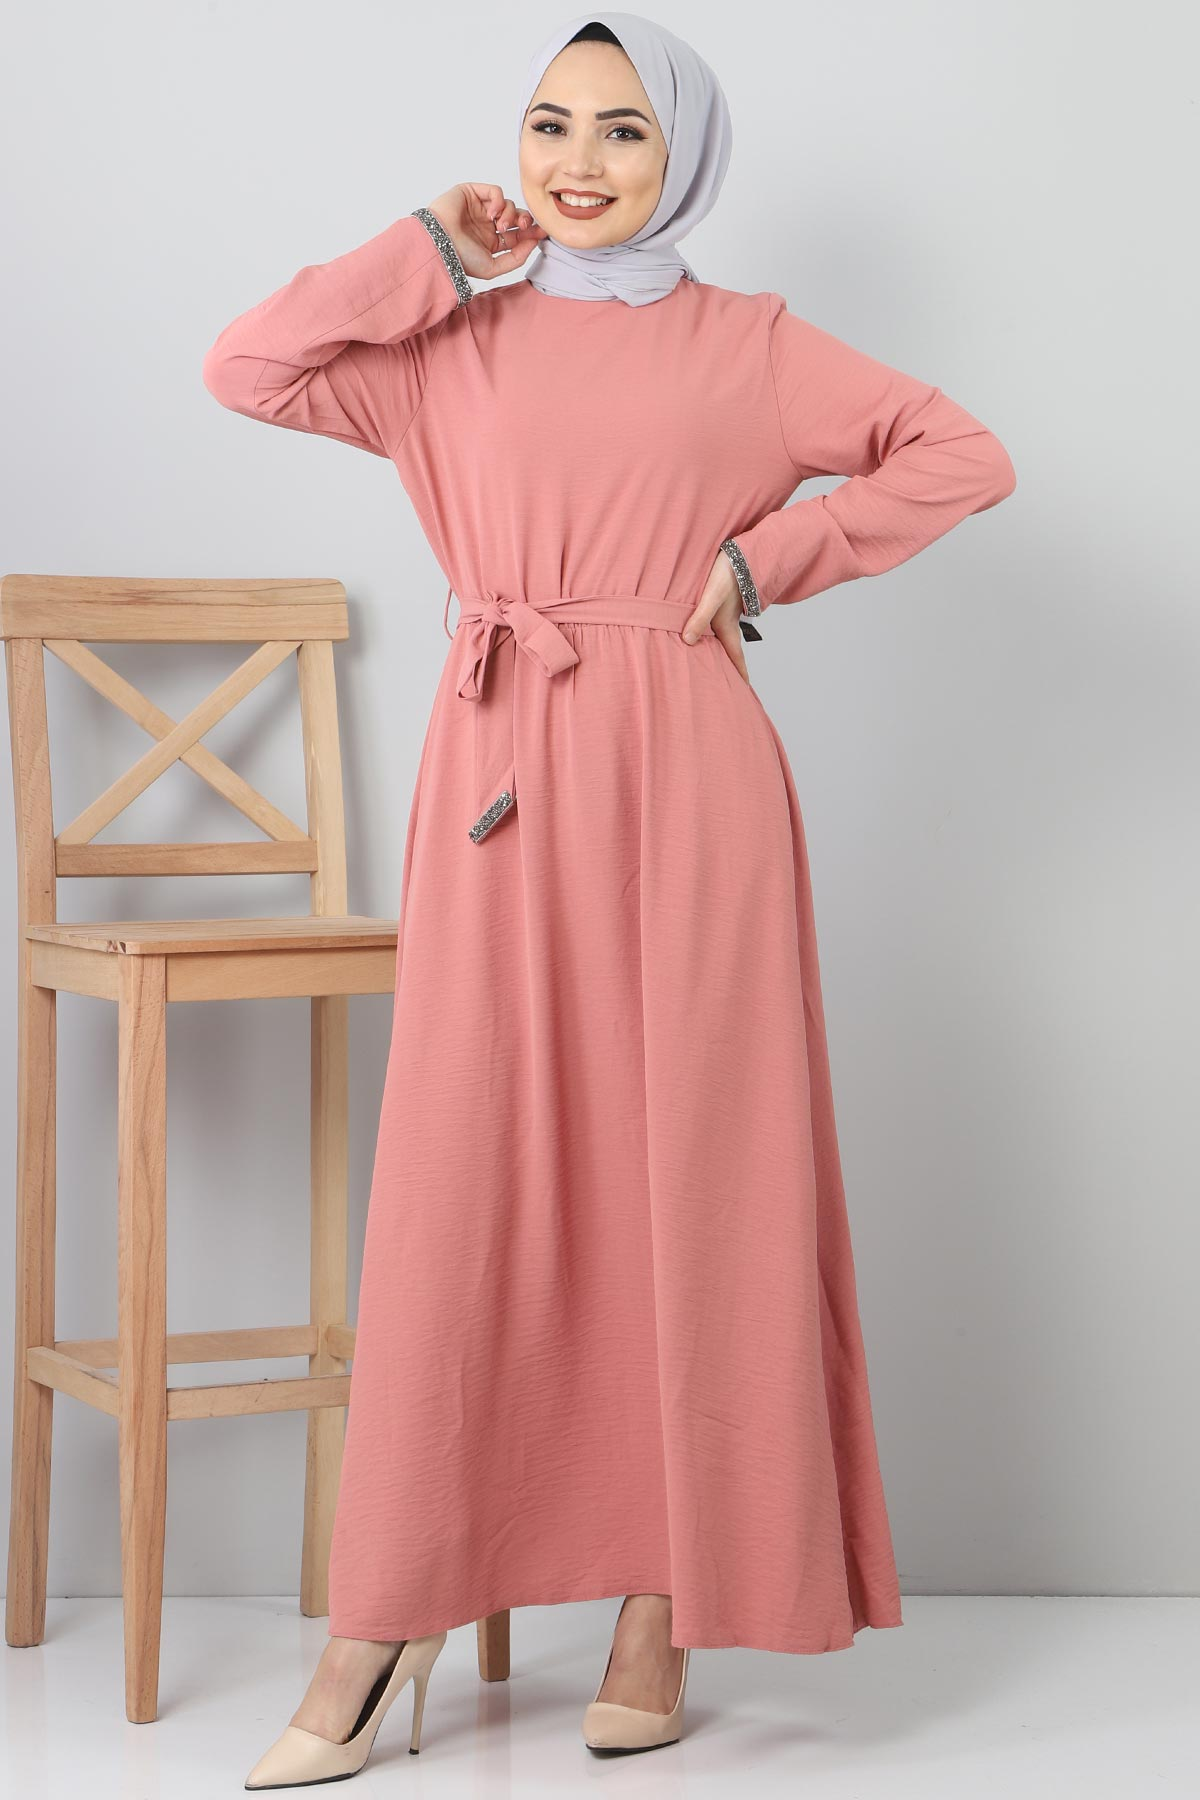 Embroidered Dress TSD6555 Pink